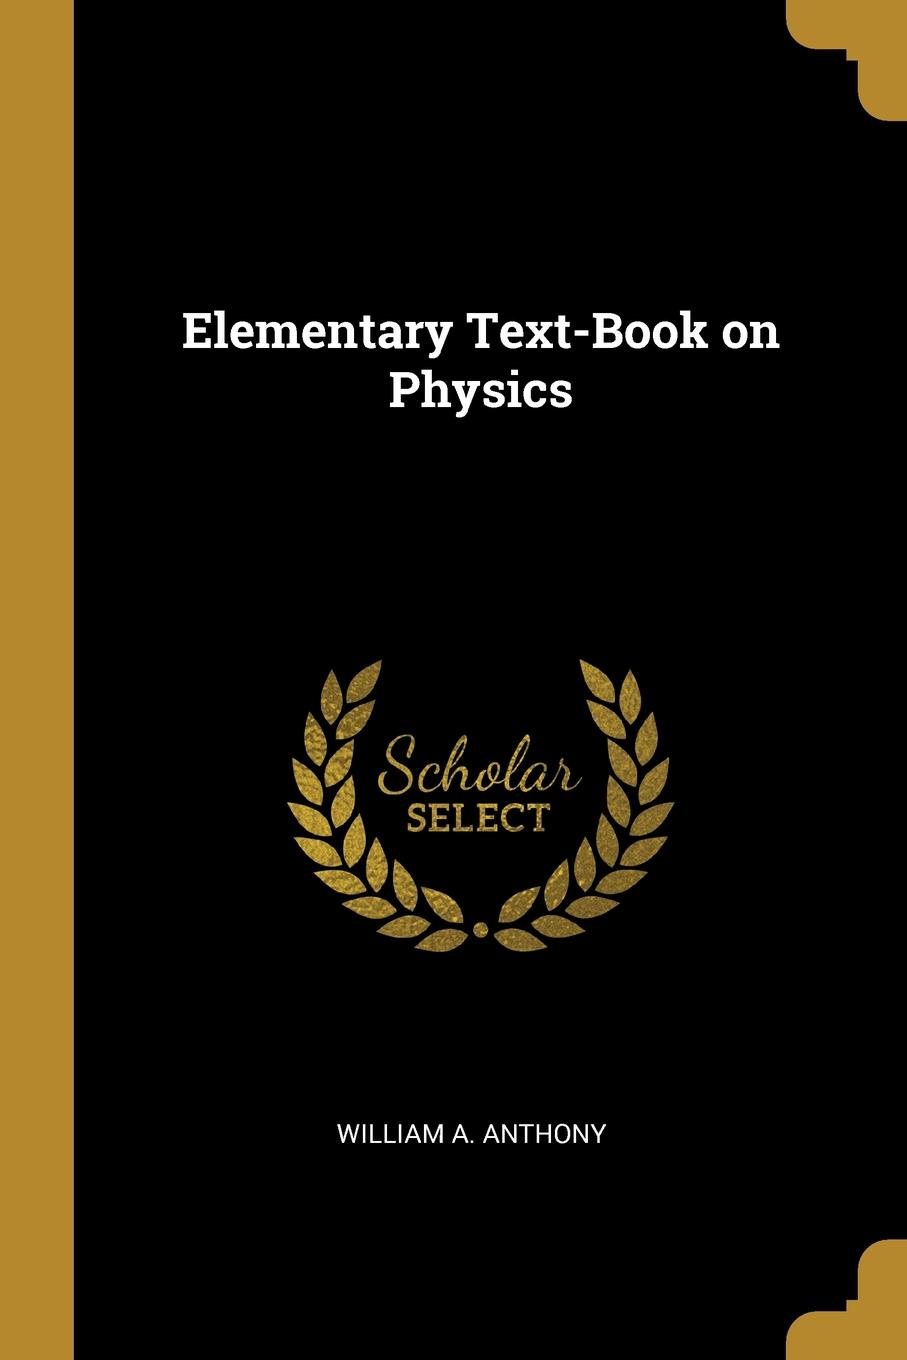 William A. Anthony. Elementary Text-Book on Physics